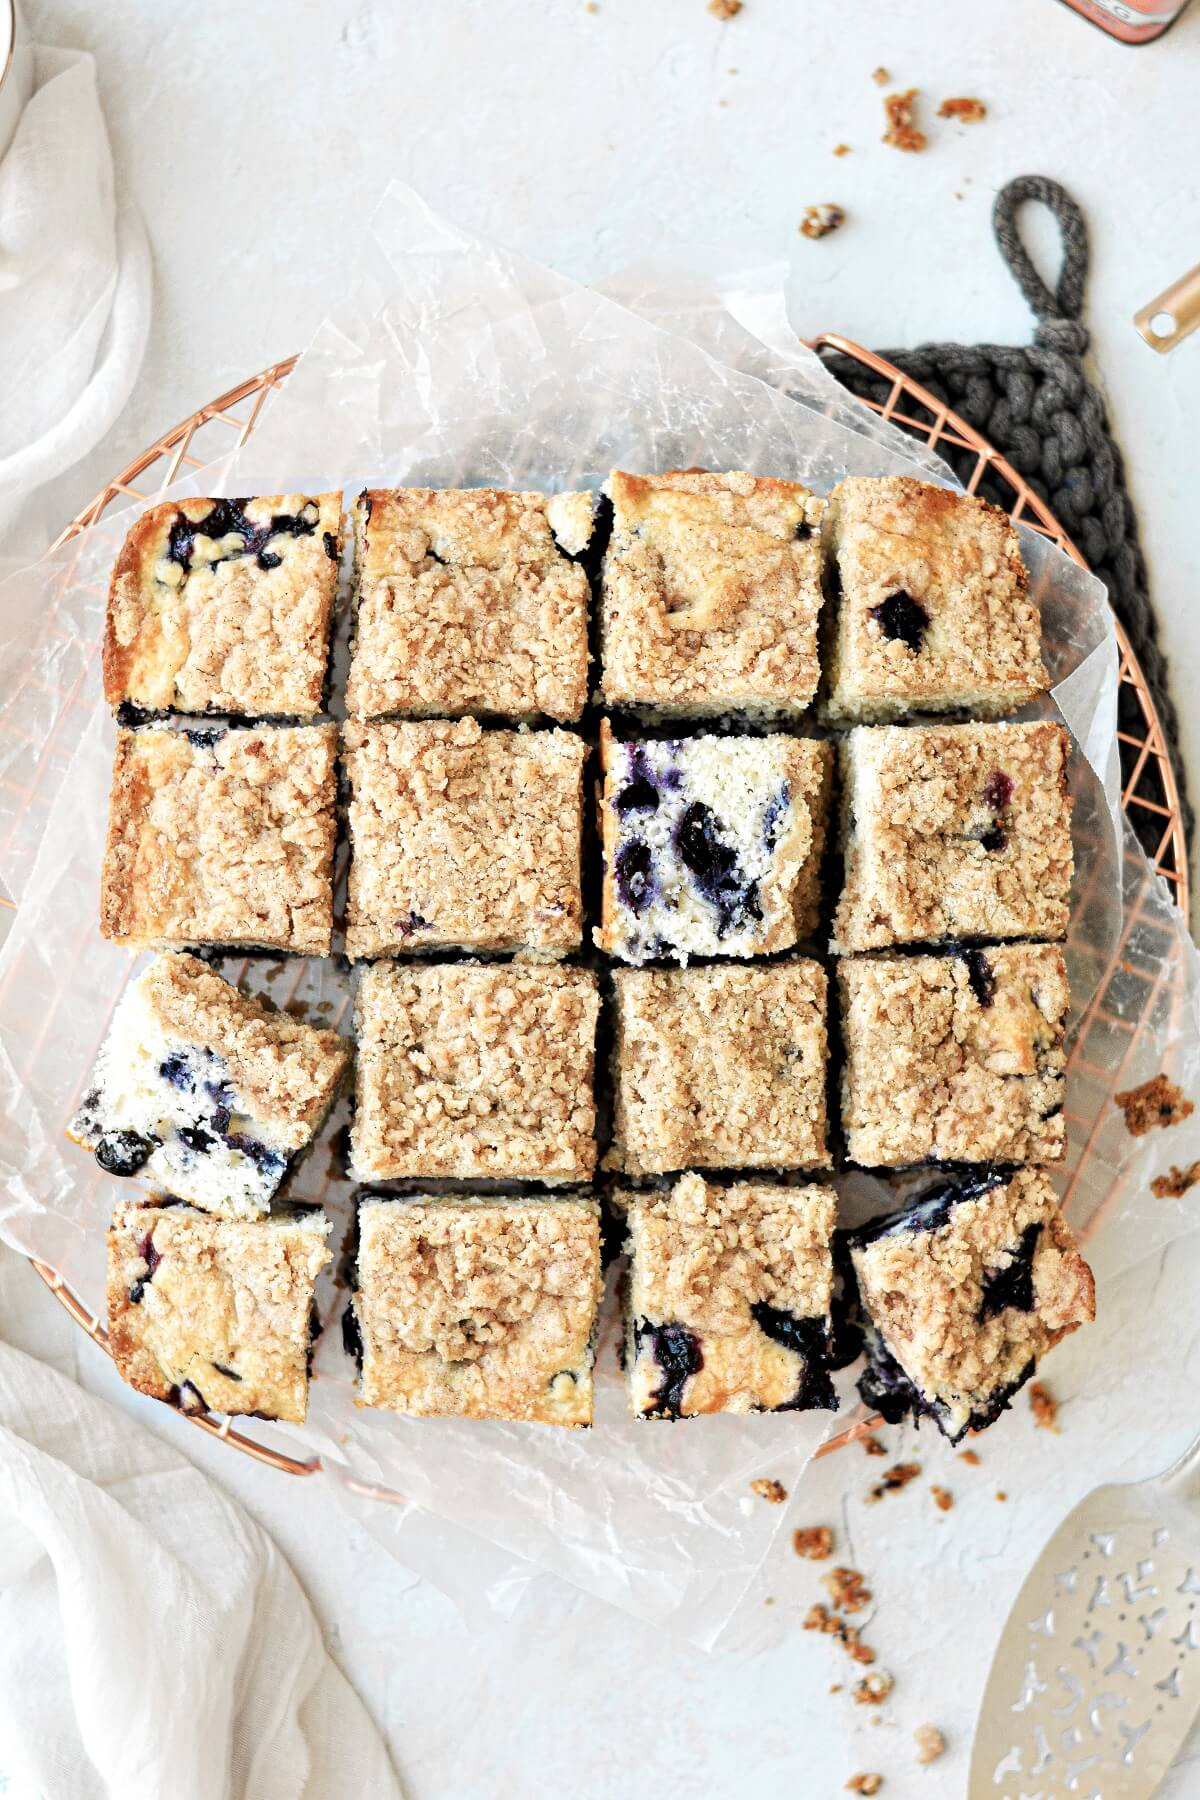 Blueberry buckle coffee cake cut into squares.